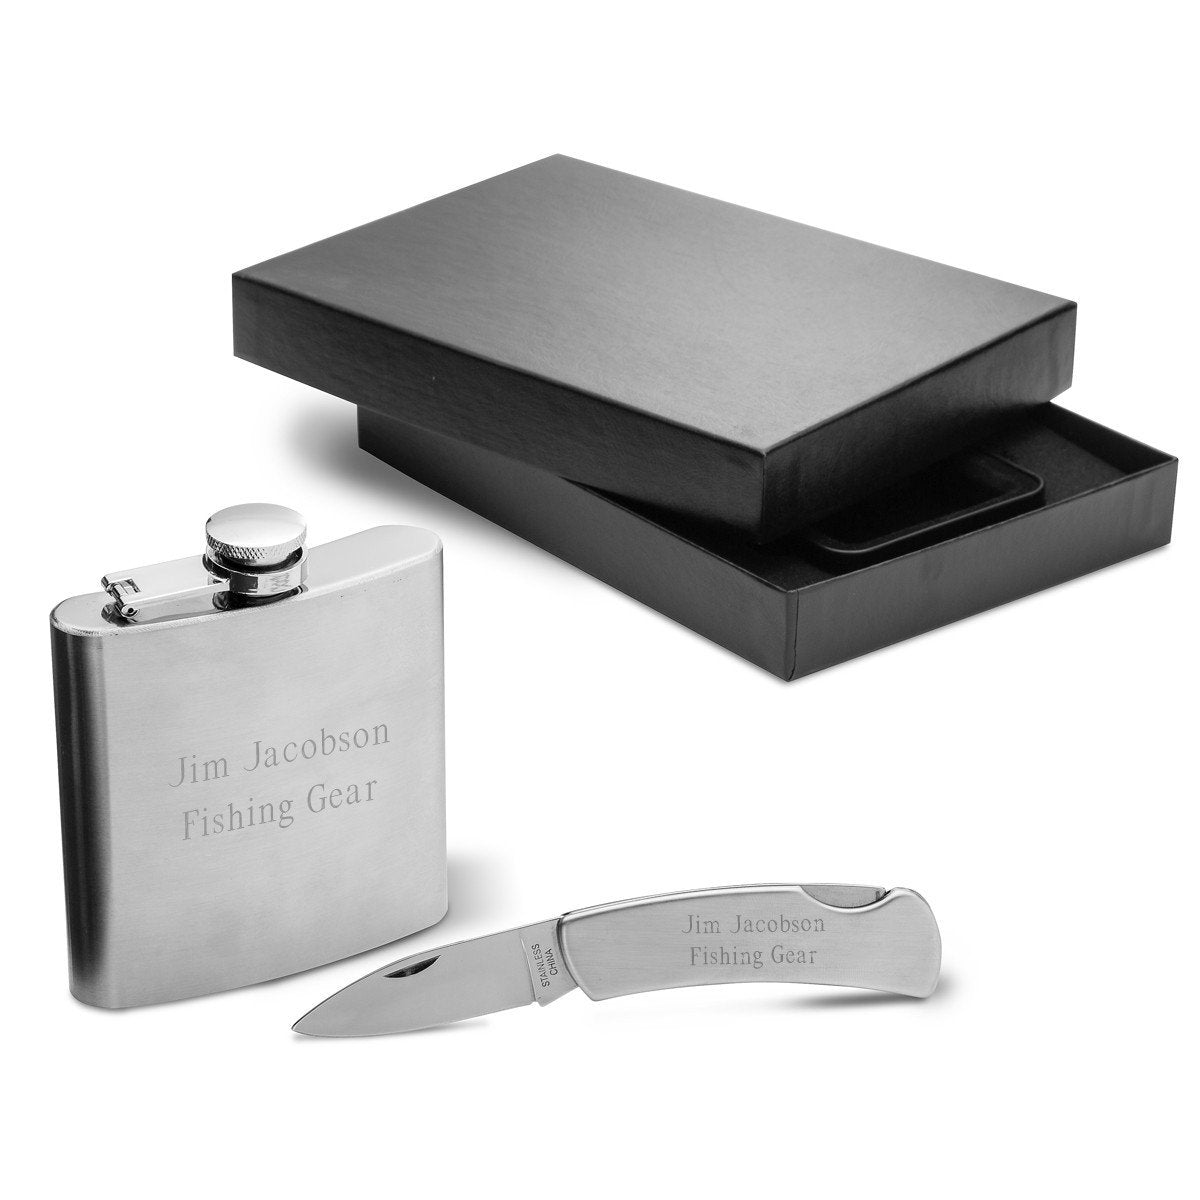 Personalized 6oz Stainless Steel Flask with Pocket Knife Gift Set